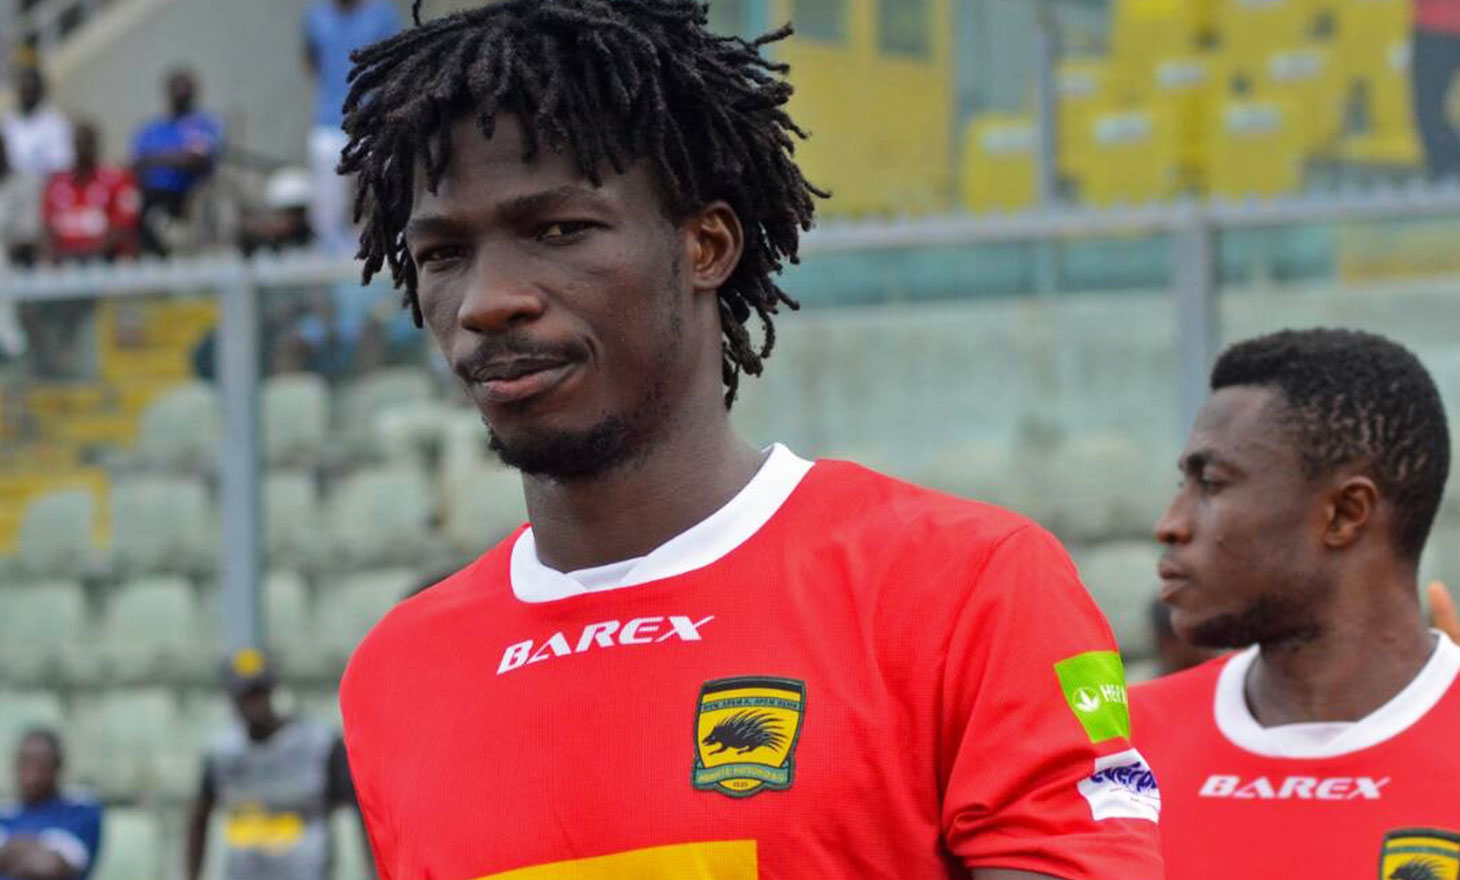 Kotoko forward Songne Yacouba insists they will fight to beat Ashgold on Sunday